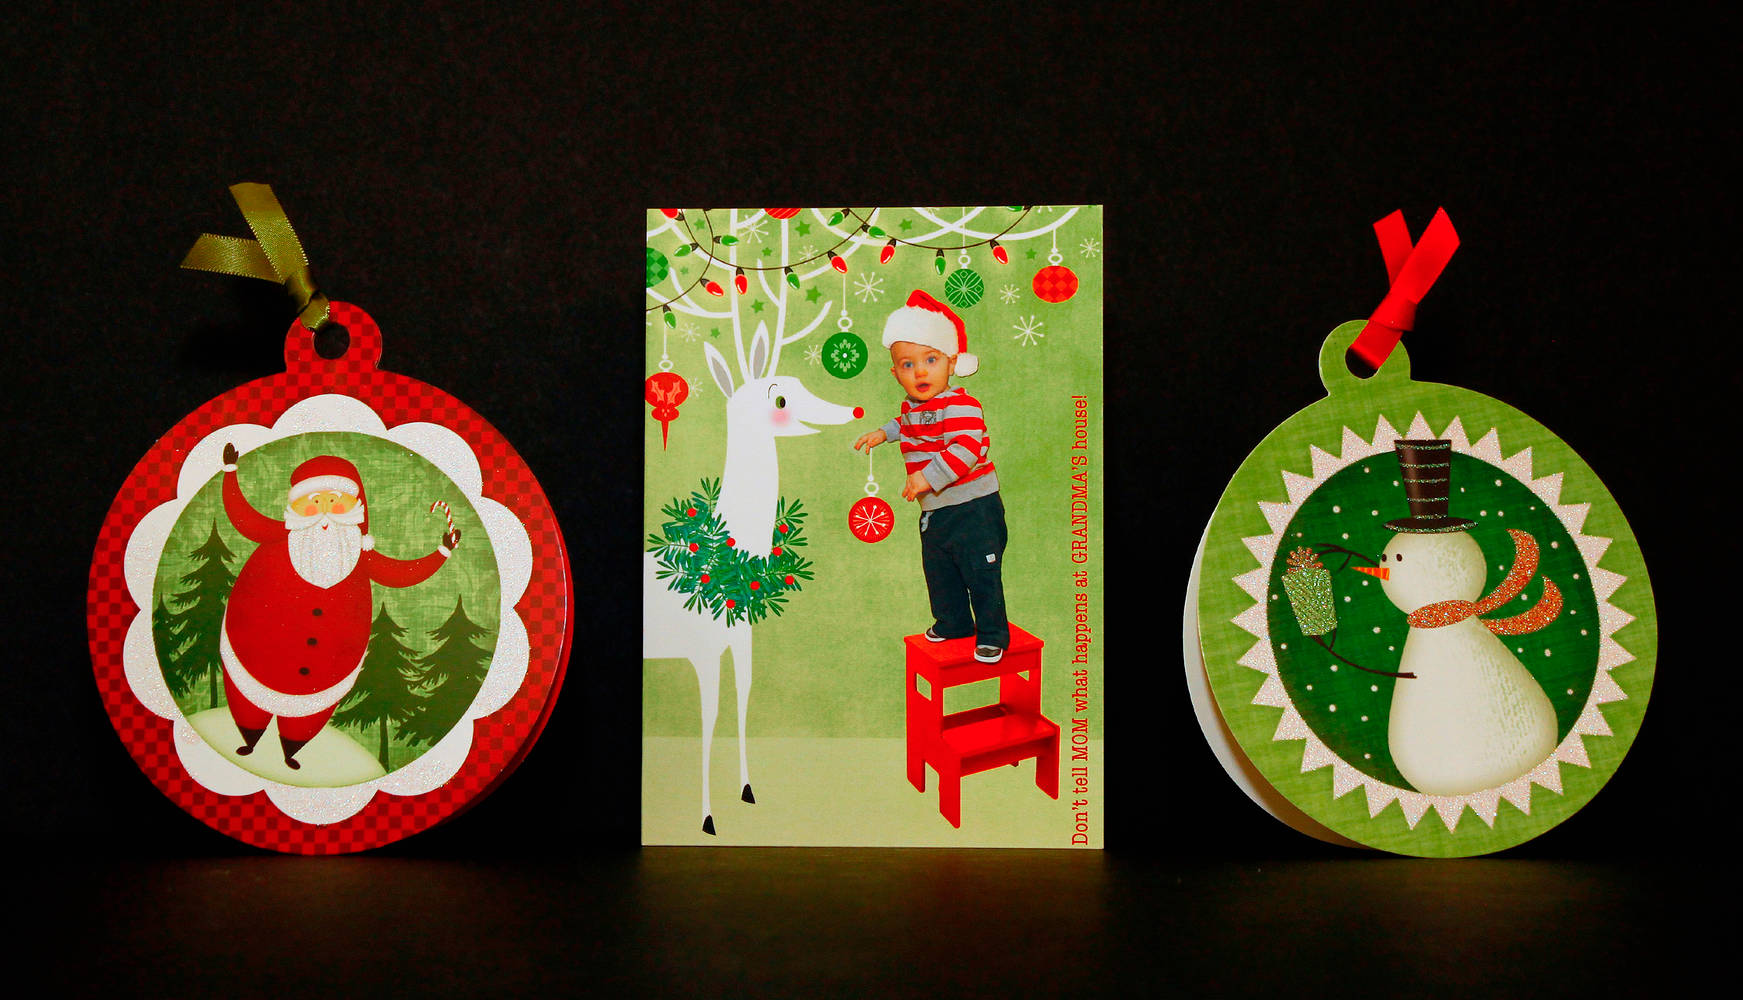 Christmas Card Assortment: American Greetings and Personal by Valerie Lesiak